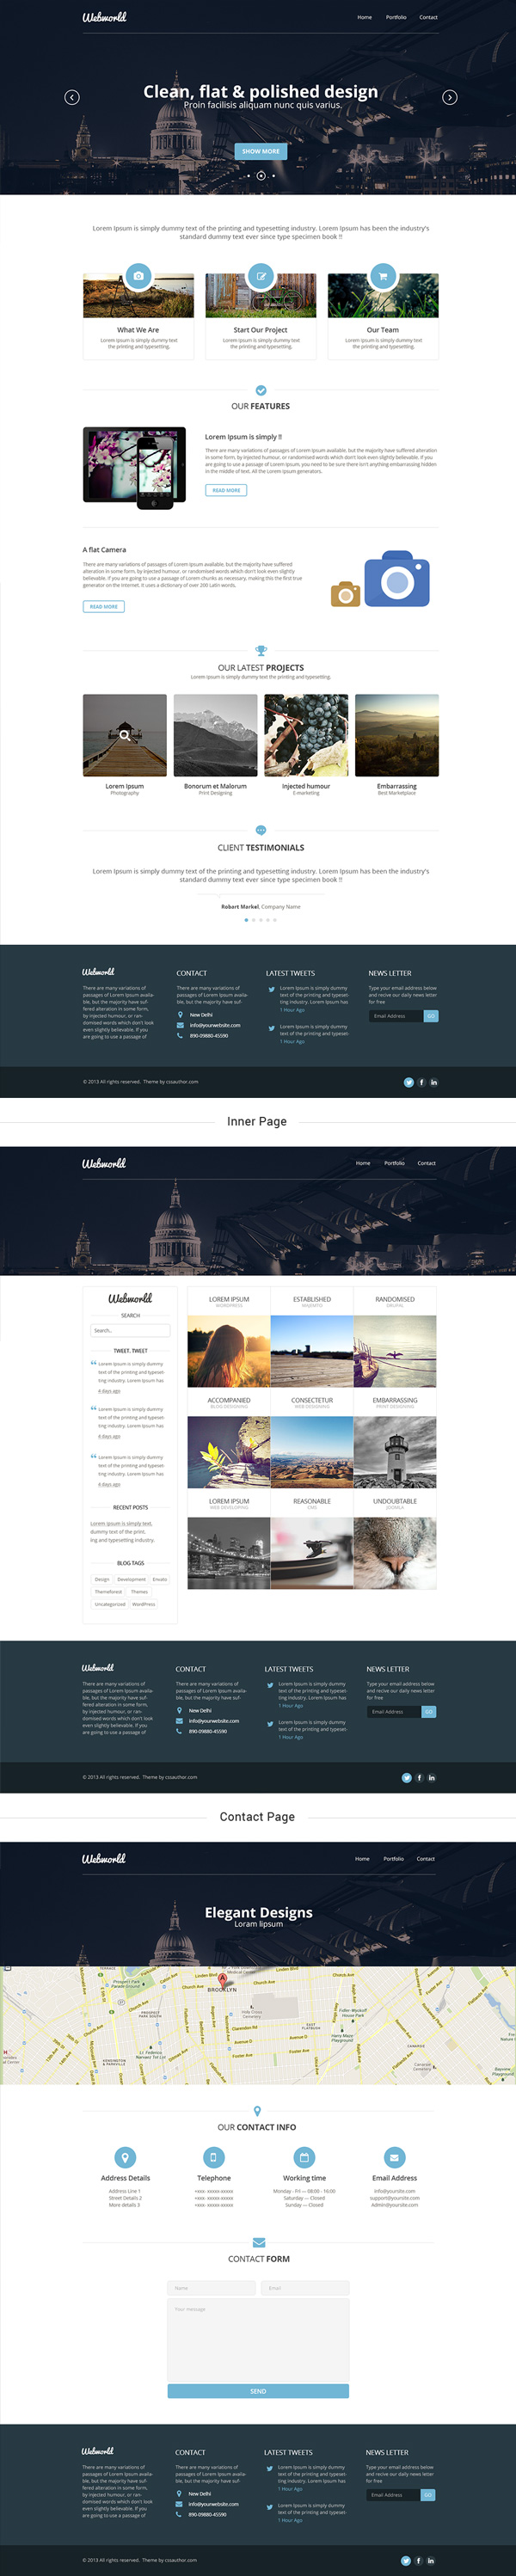 website design templates psd